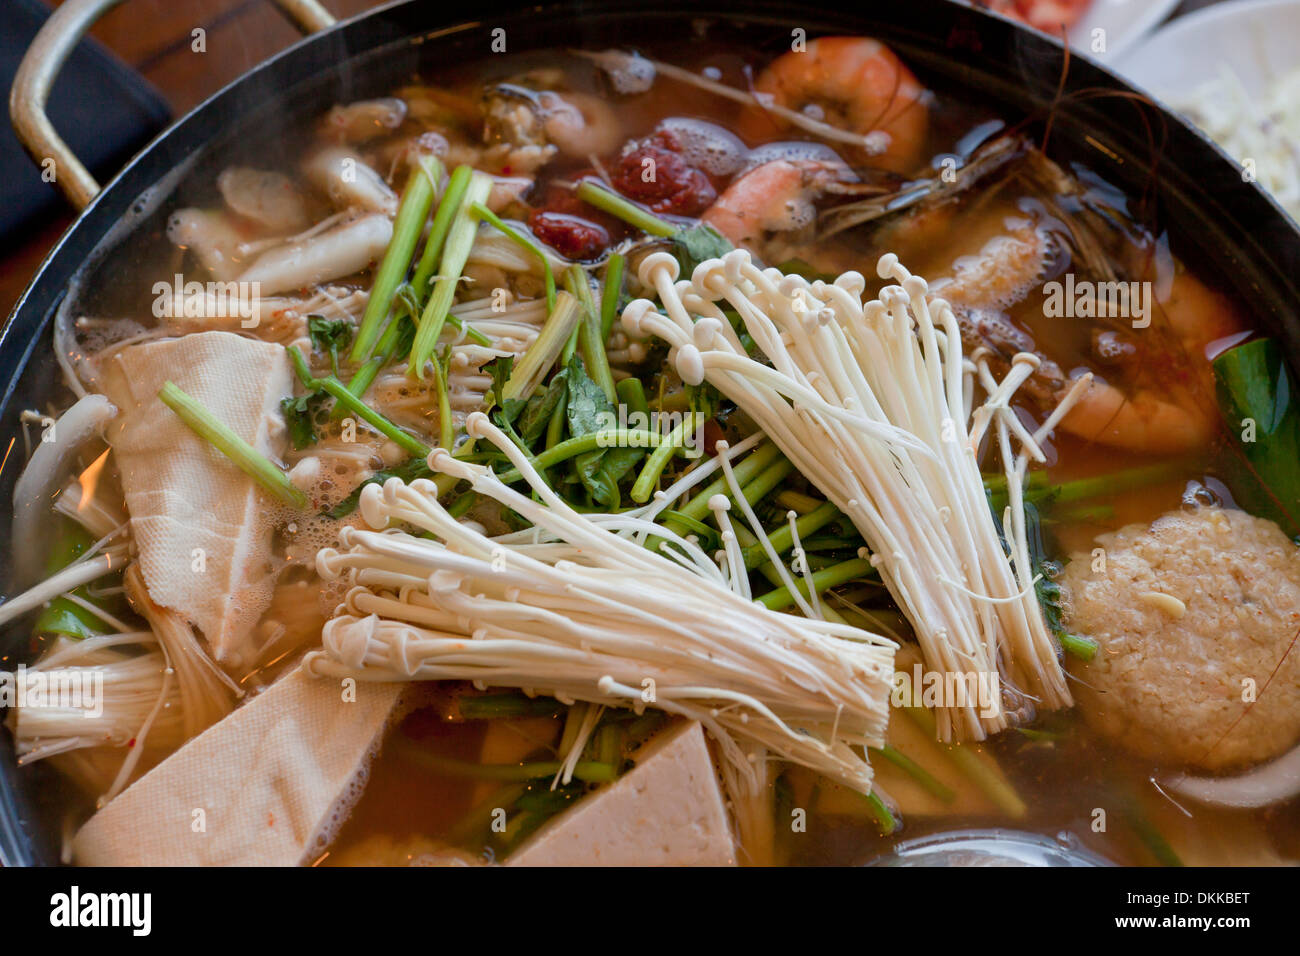 Spicy Seafood Soup Dish Haemultang On Table South Korea Stock Image